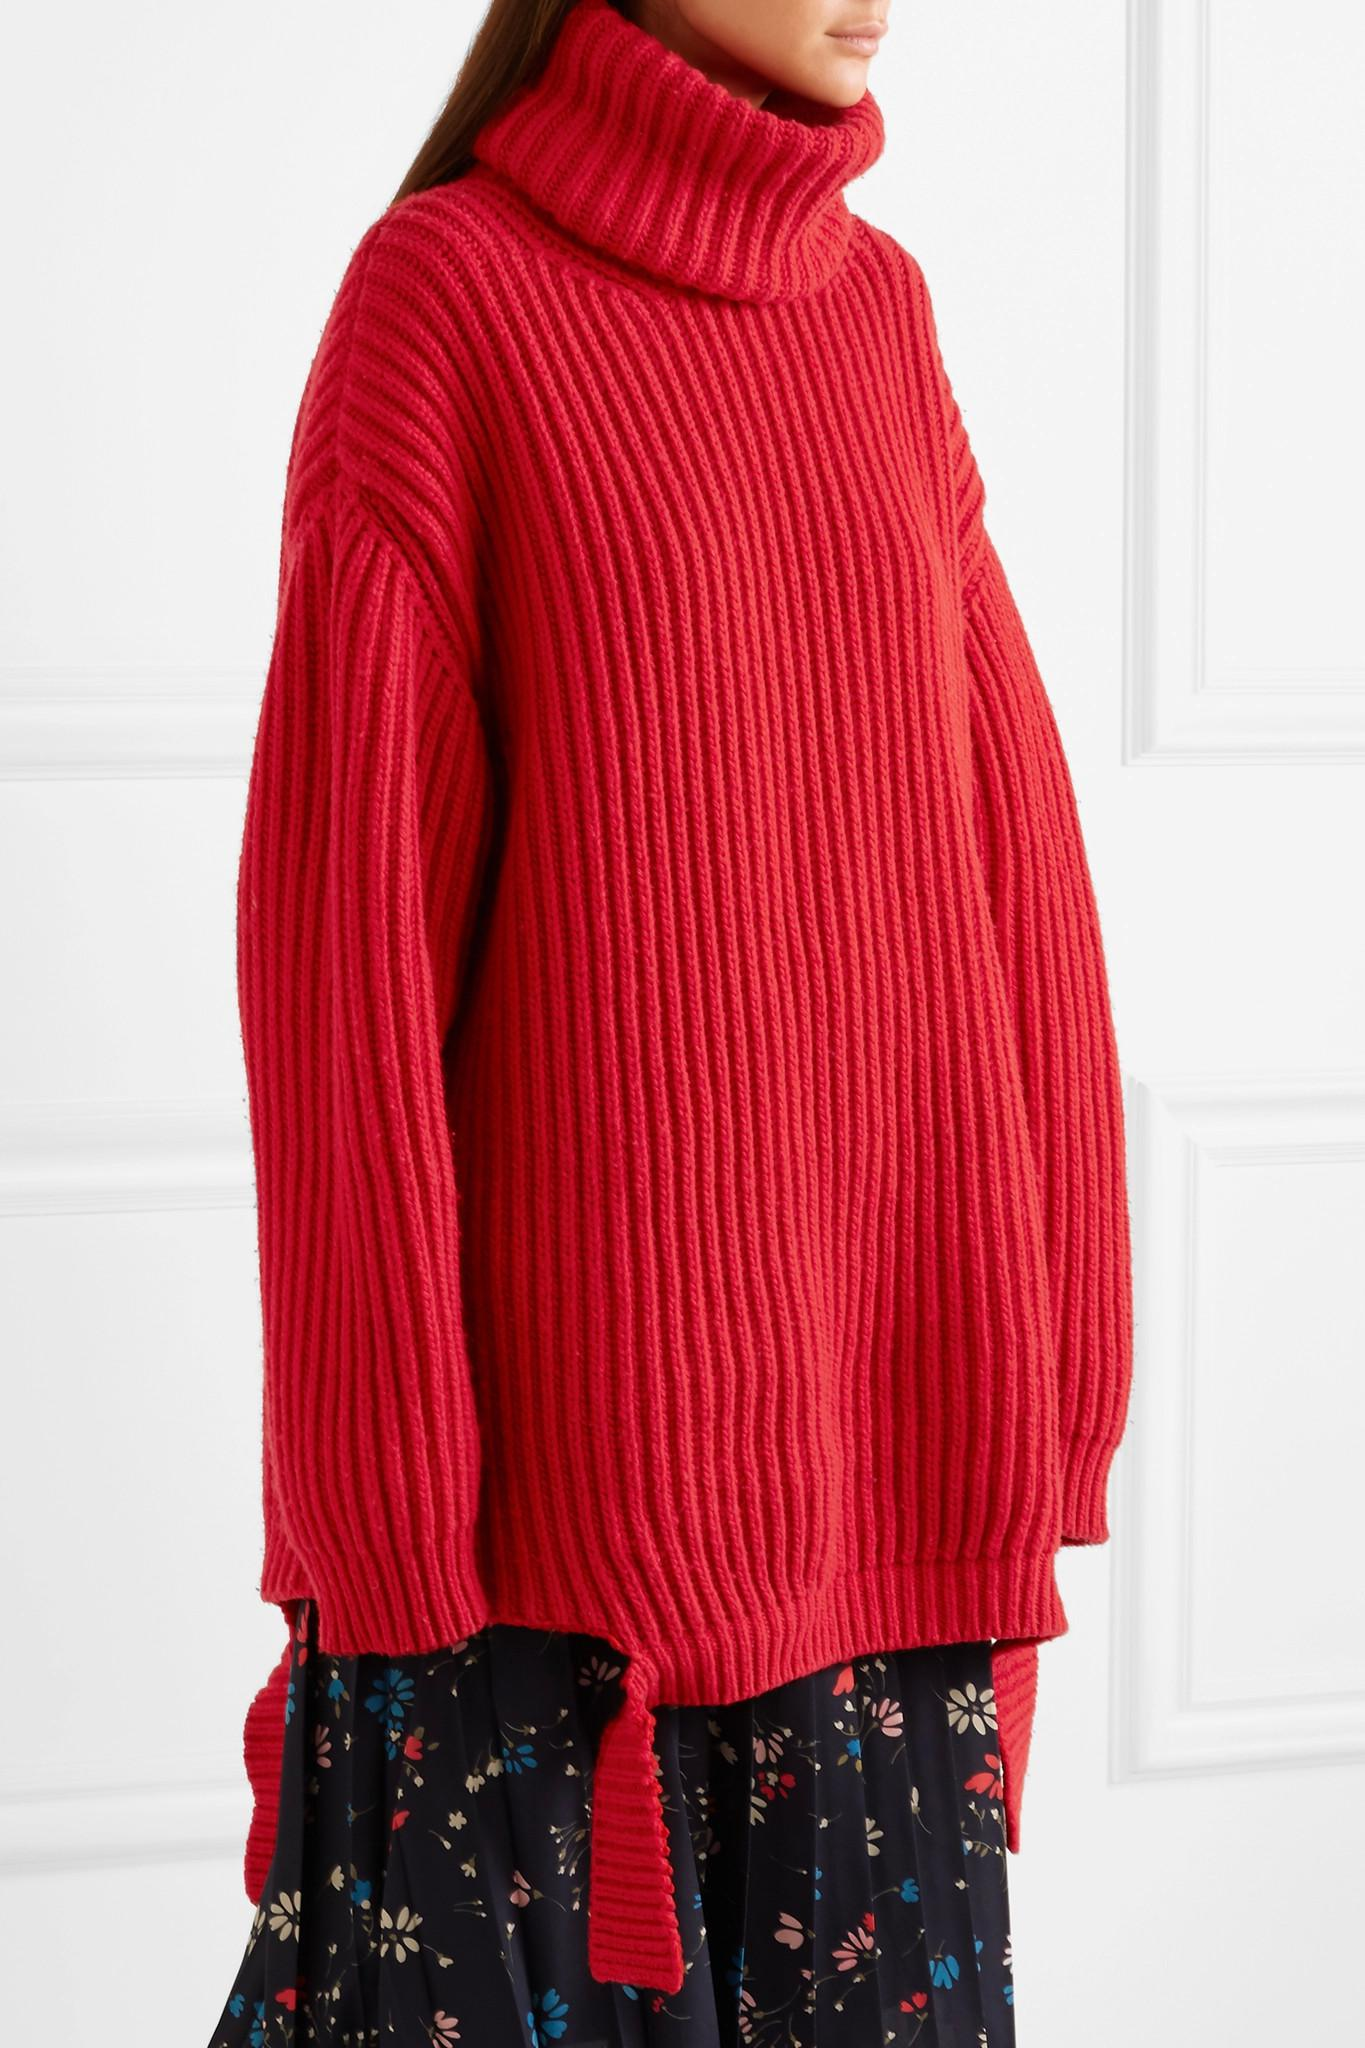 Balenciaga Oversized Ribbed Wool Turtleneck Sweater in Red | Lyst